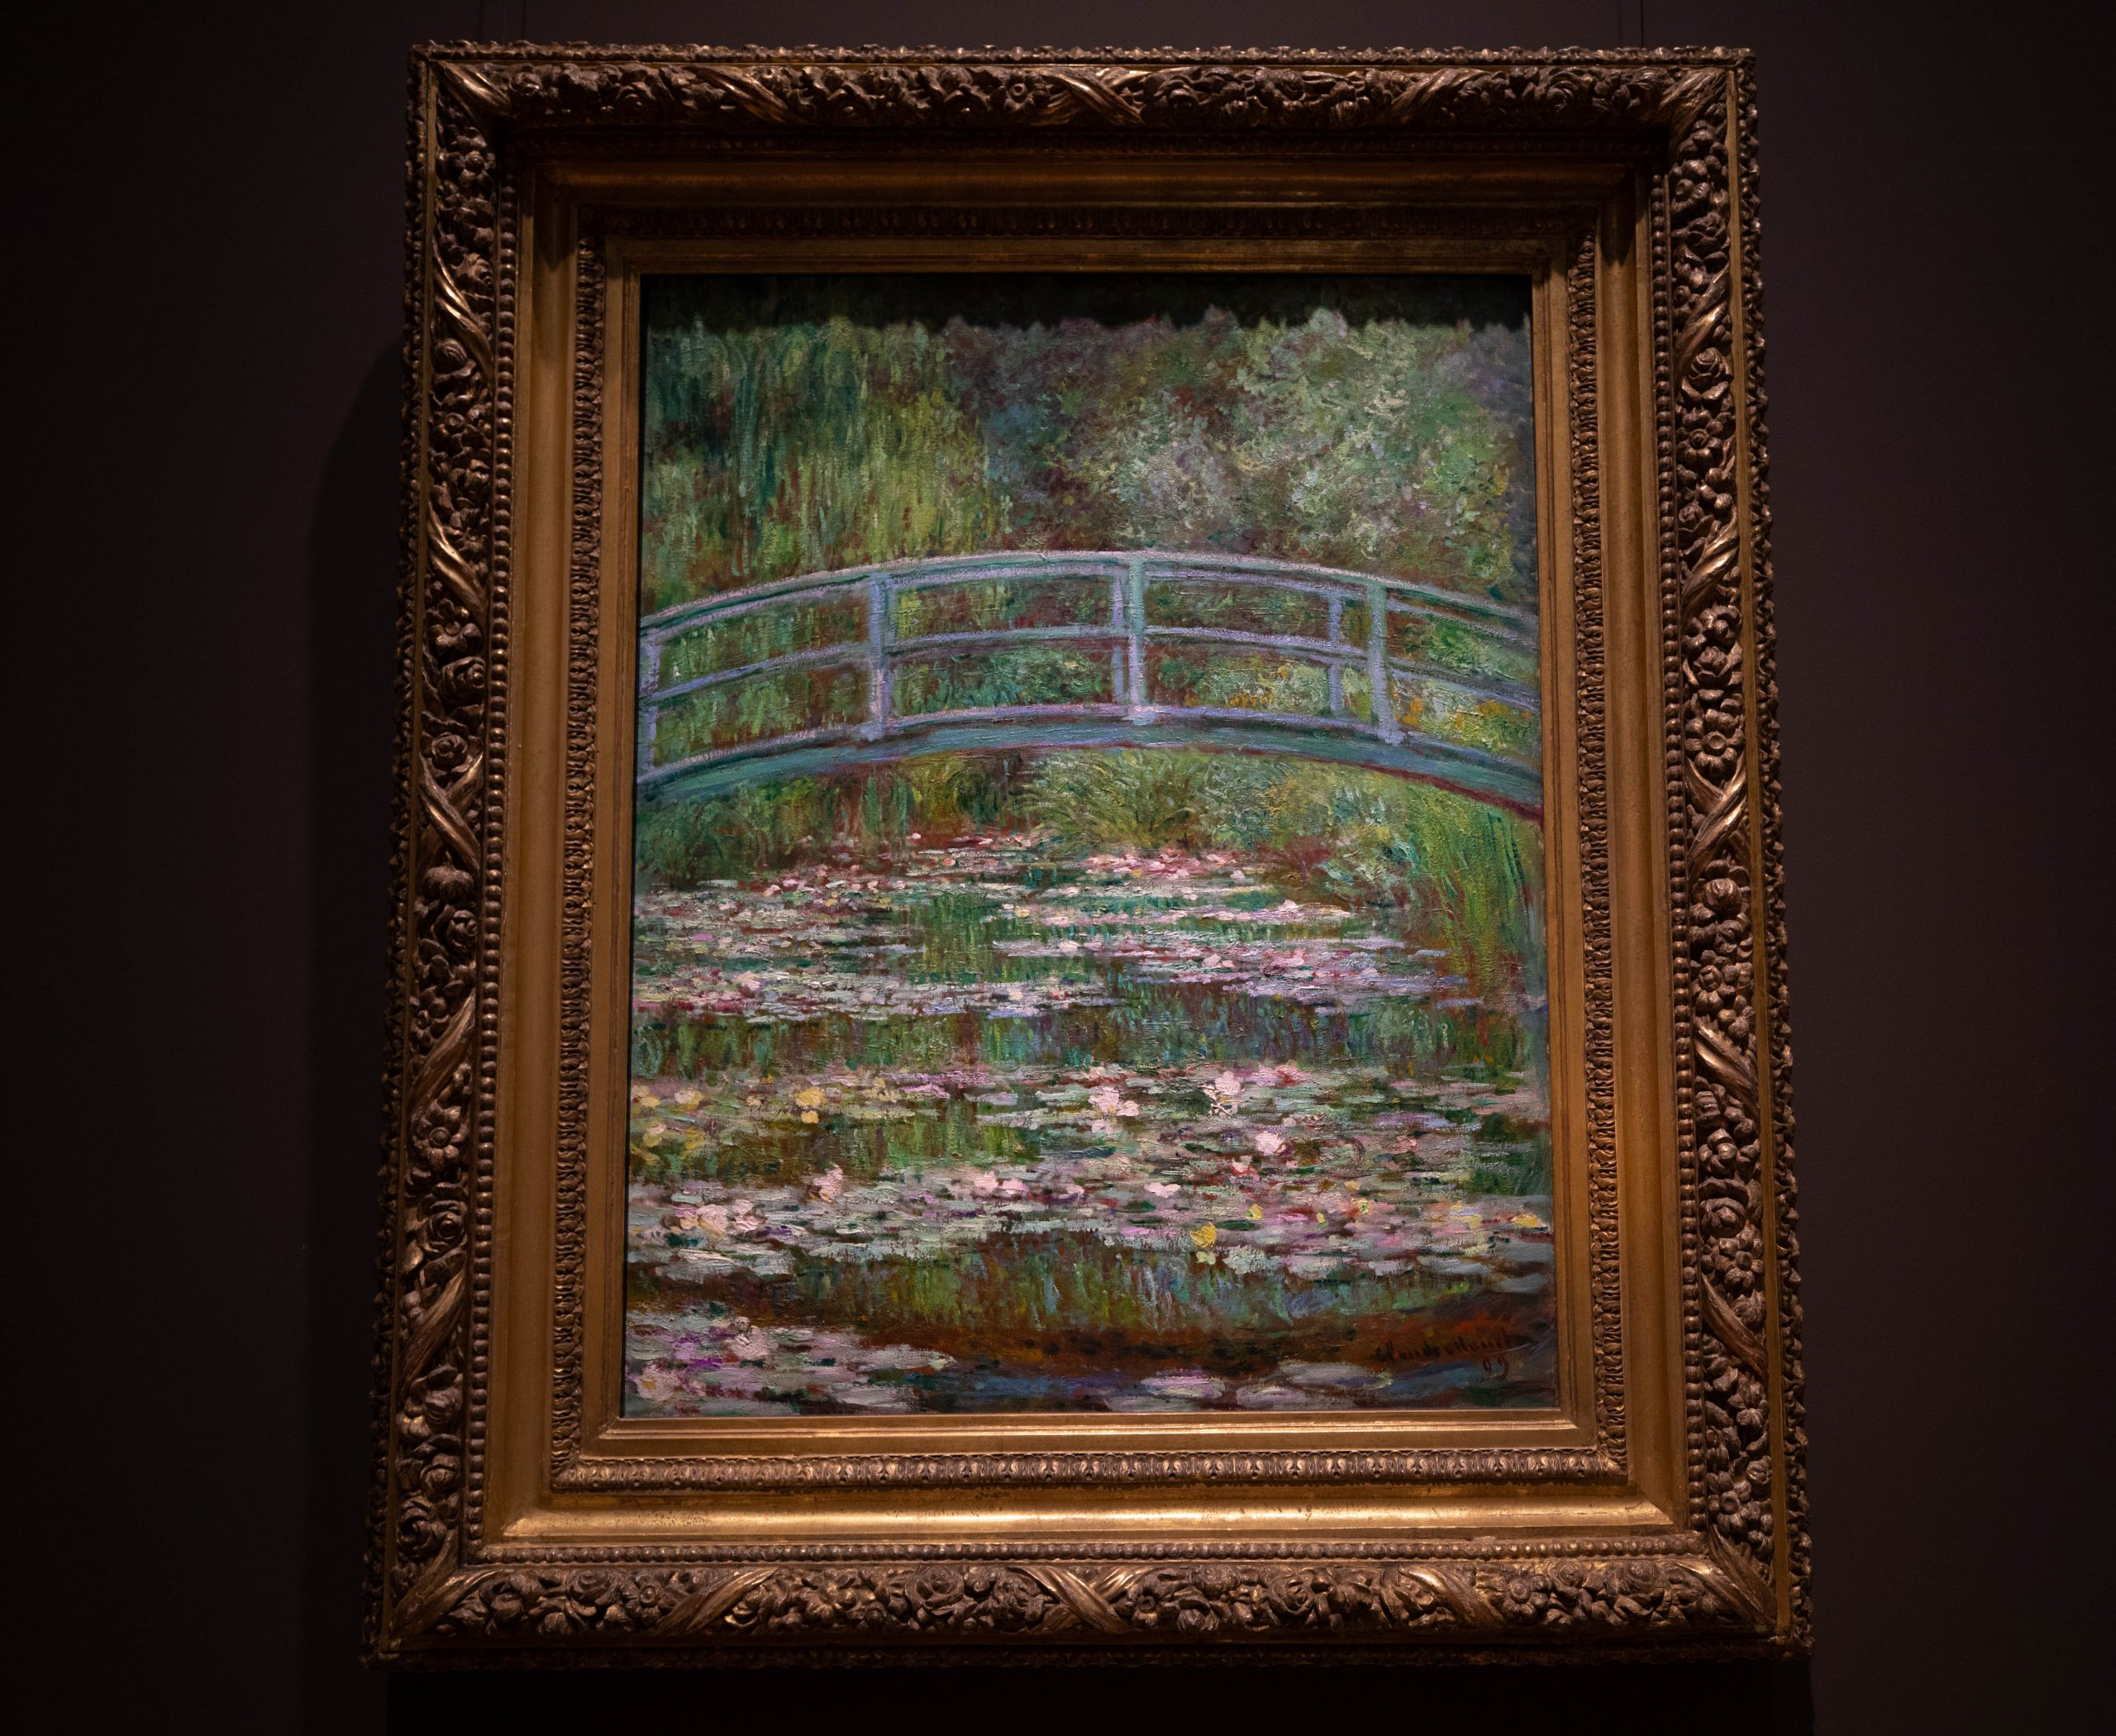 Bridge Over a Pond of Water Lillies by Claude Monet 1899 The Metropolitan Museum of Art The Met in New York City New York Photographed by Annie Fairfax